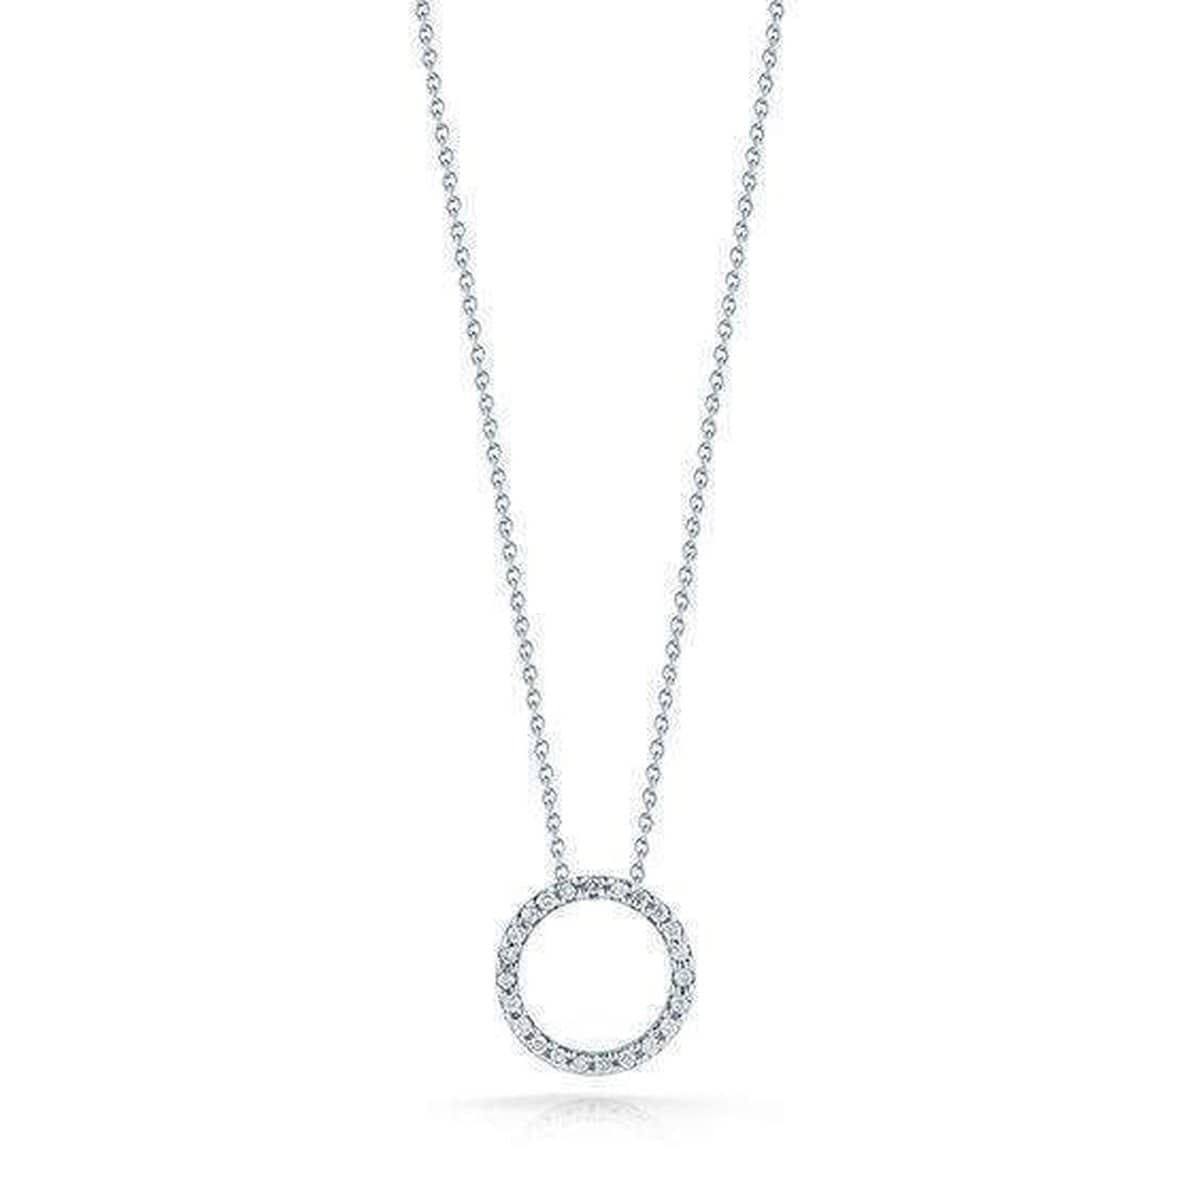 Extra Small Circle Pendant Necklace - 001258AWCHX0-Roberto Coin-Renee Taylor Gallery